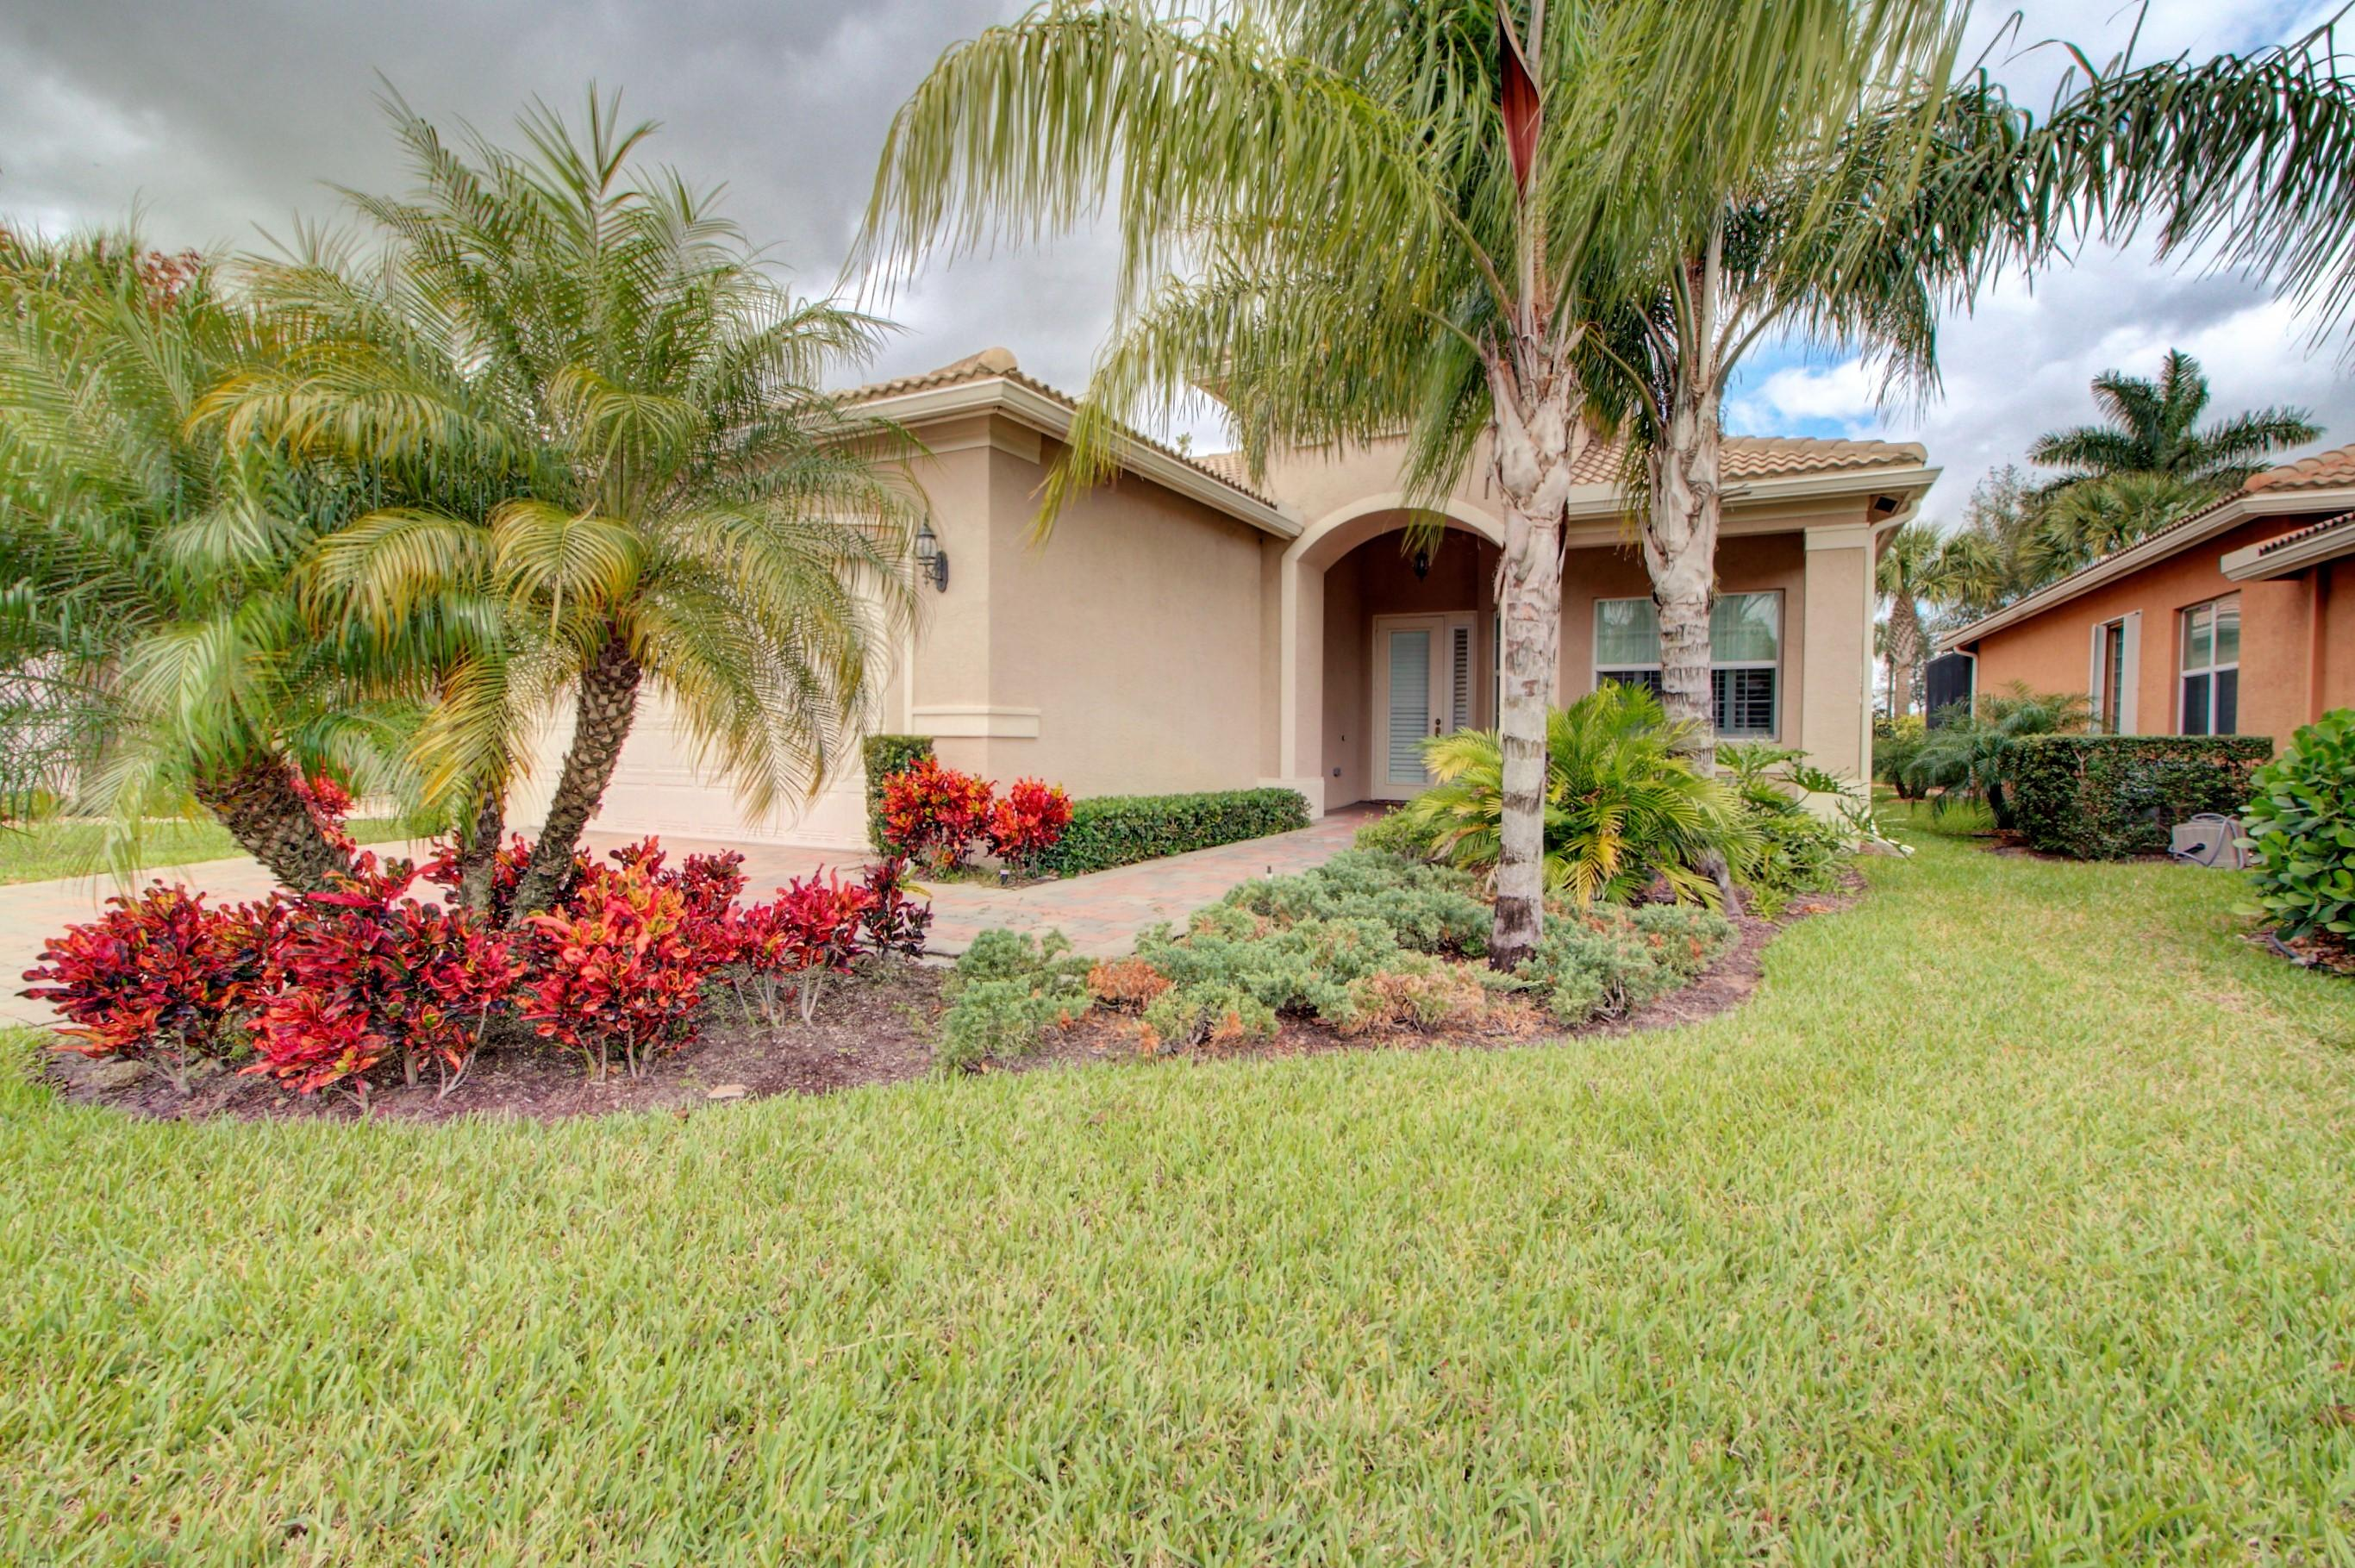 VALENCIA COVE home 8703 Carmel Mountain Way Boynton Beach FL 33473